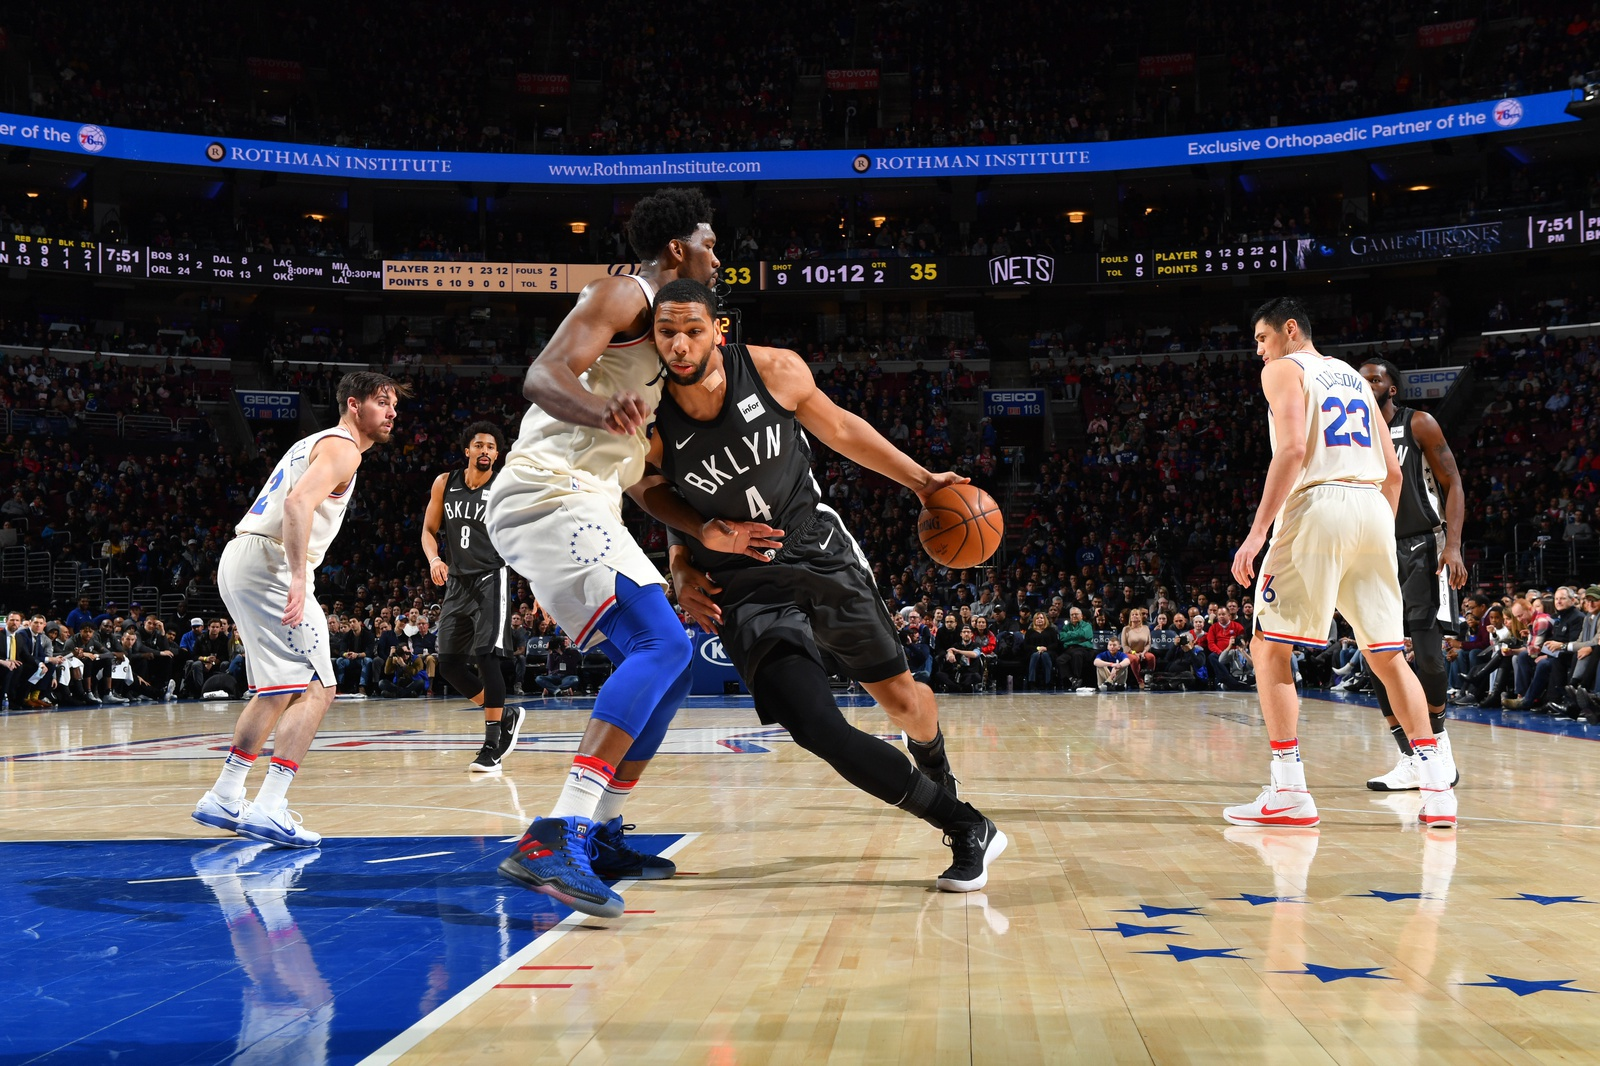 Jahlil Okafor #4 of the Brooklyn Nets drives to the basket against the Philadelphia 76ers at the Wells Fargo Center on March 16, 2018 in Philadelphia, Pennsylvania